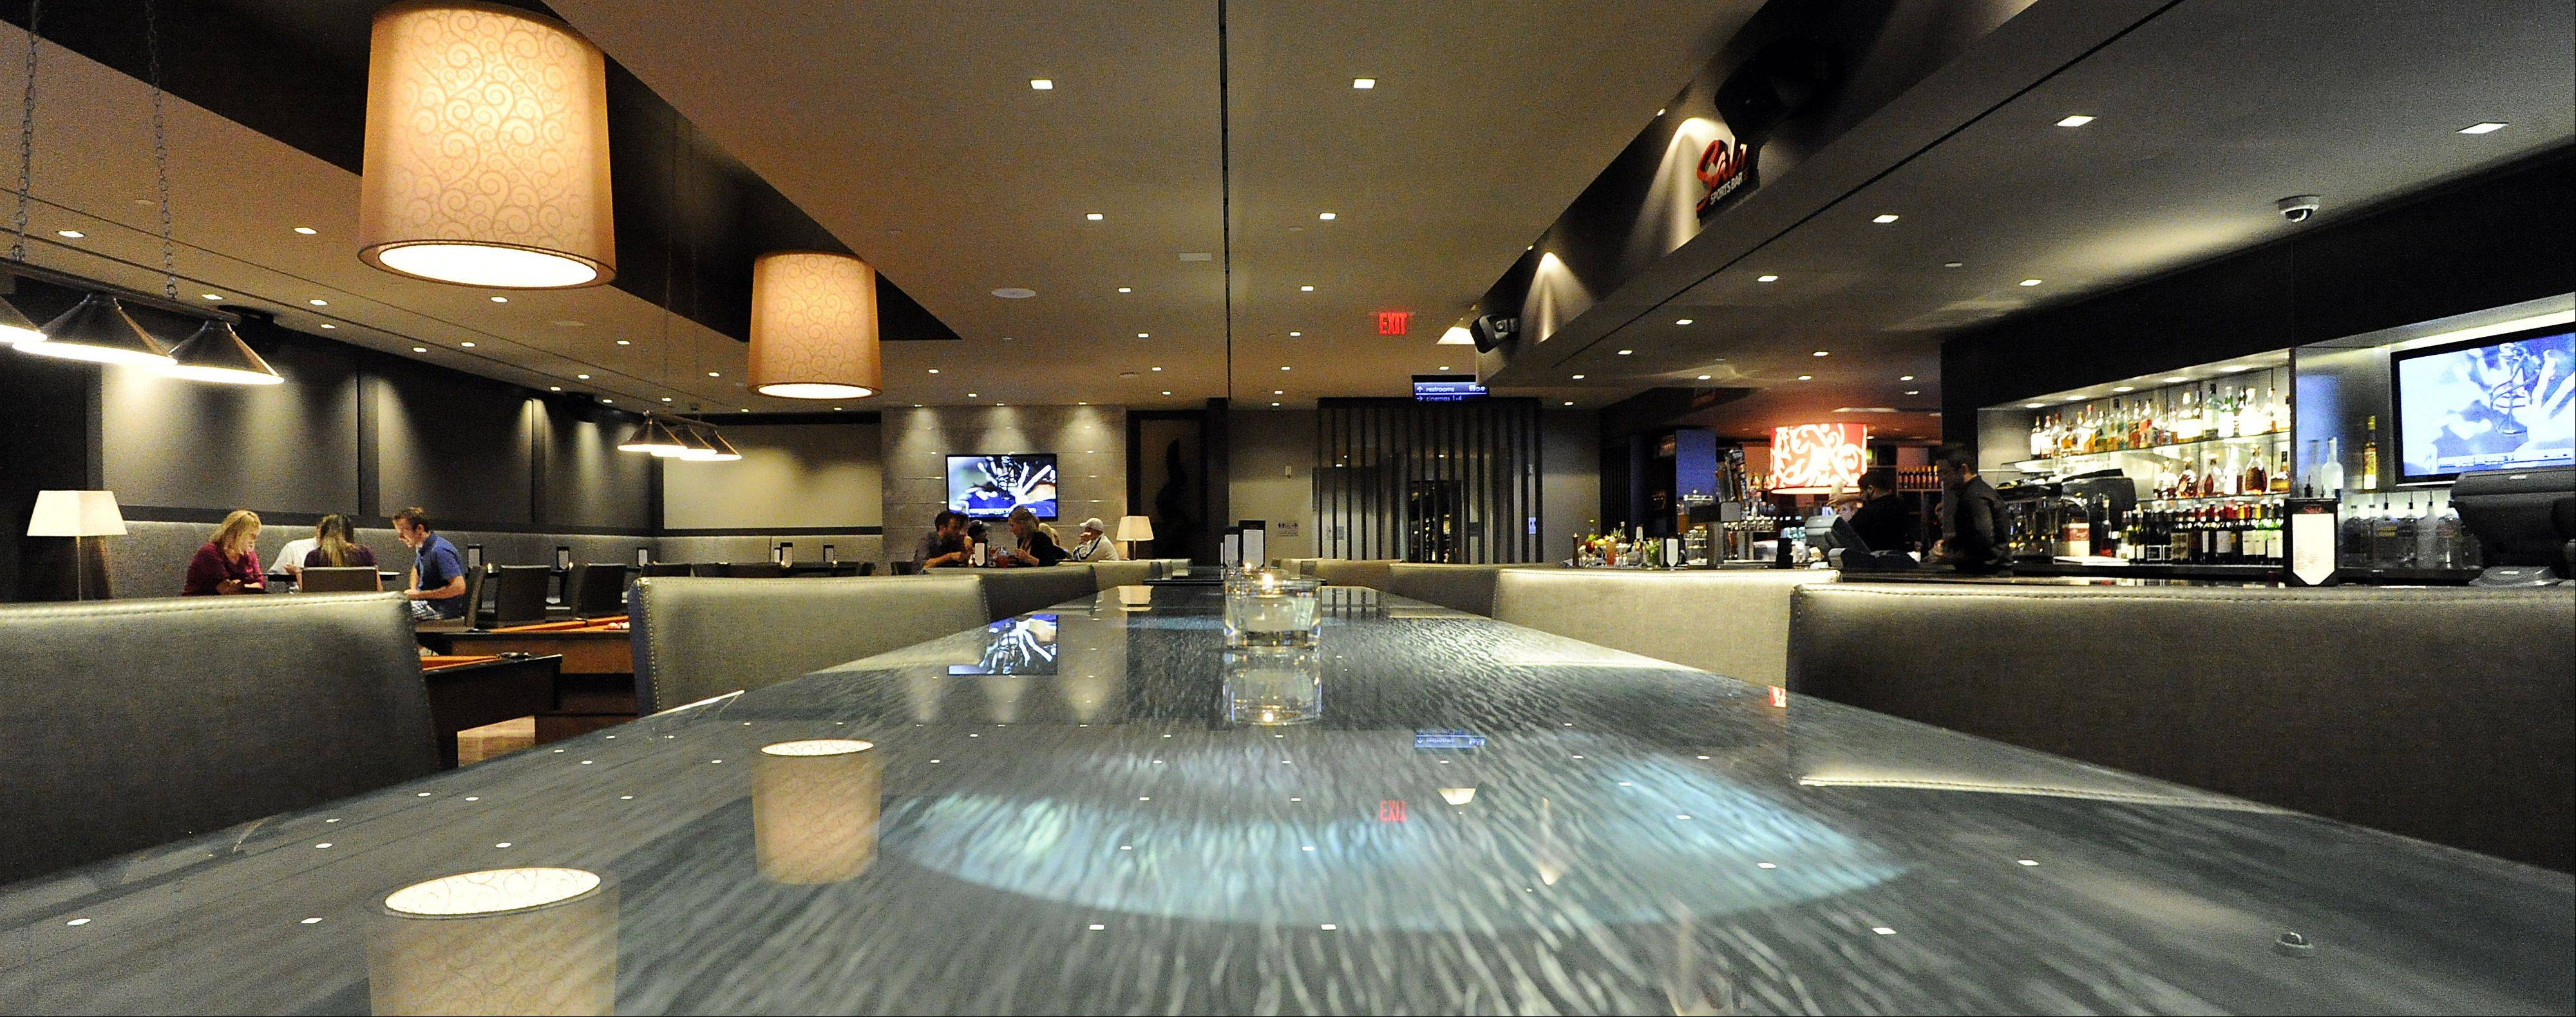 Salt Sports Bar provides a friendly destination for drinks, dinner and a movie, all in one location in South Barrington.